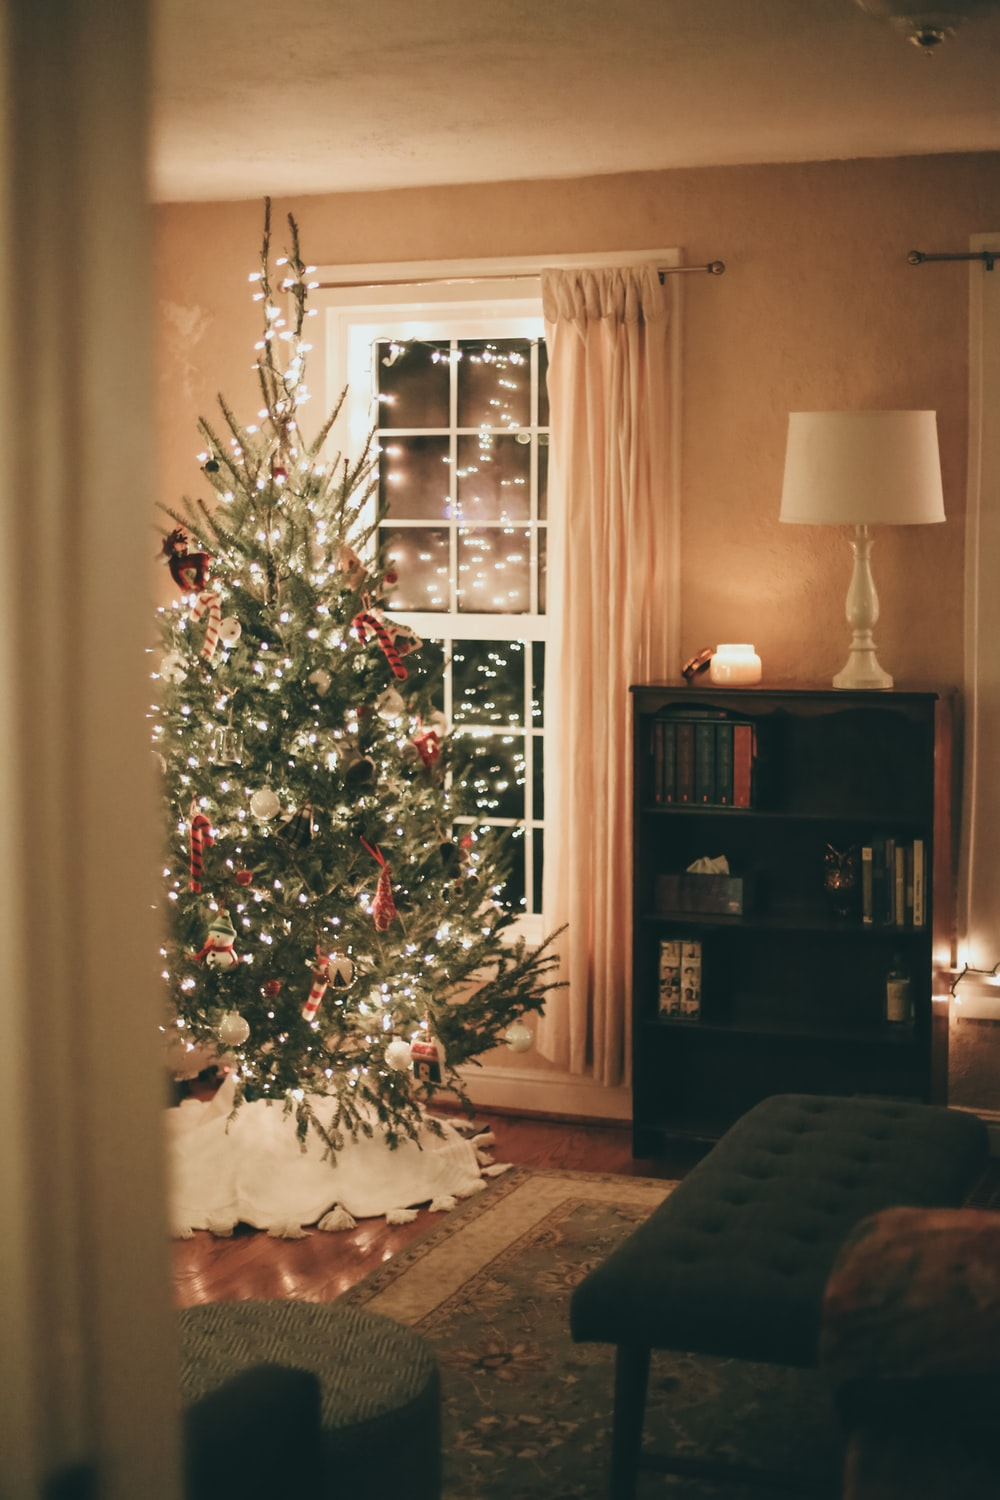 green christmas tree with baubles near brown wooden shelf